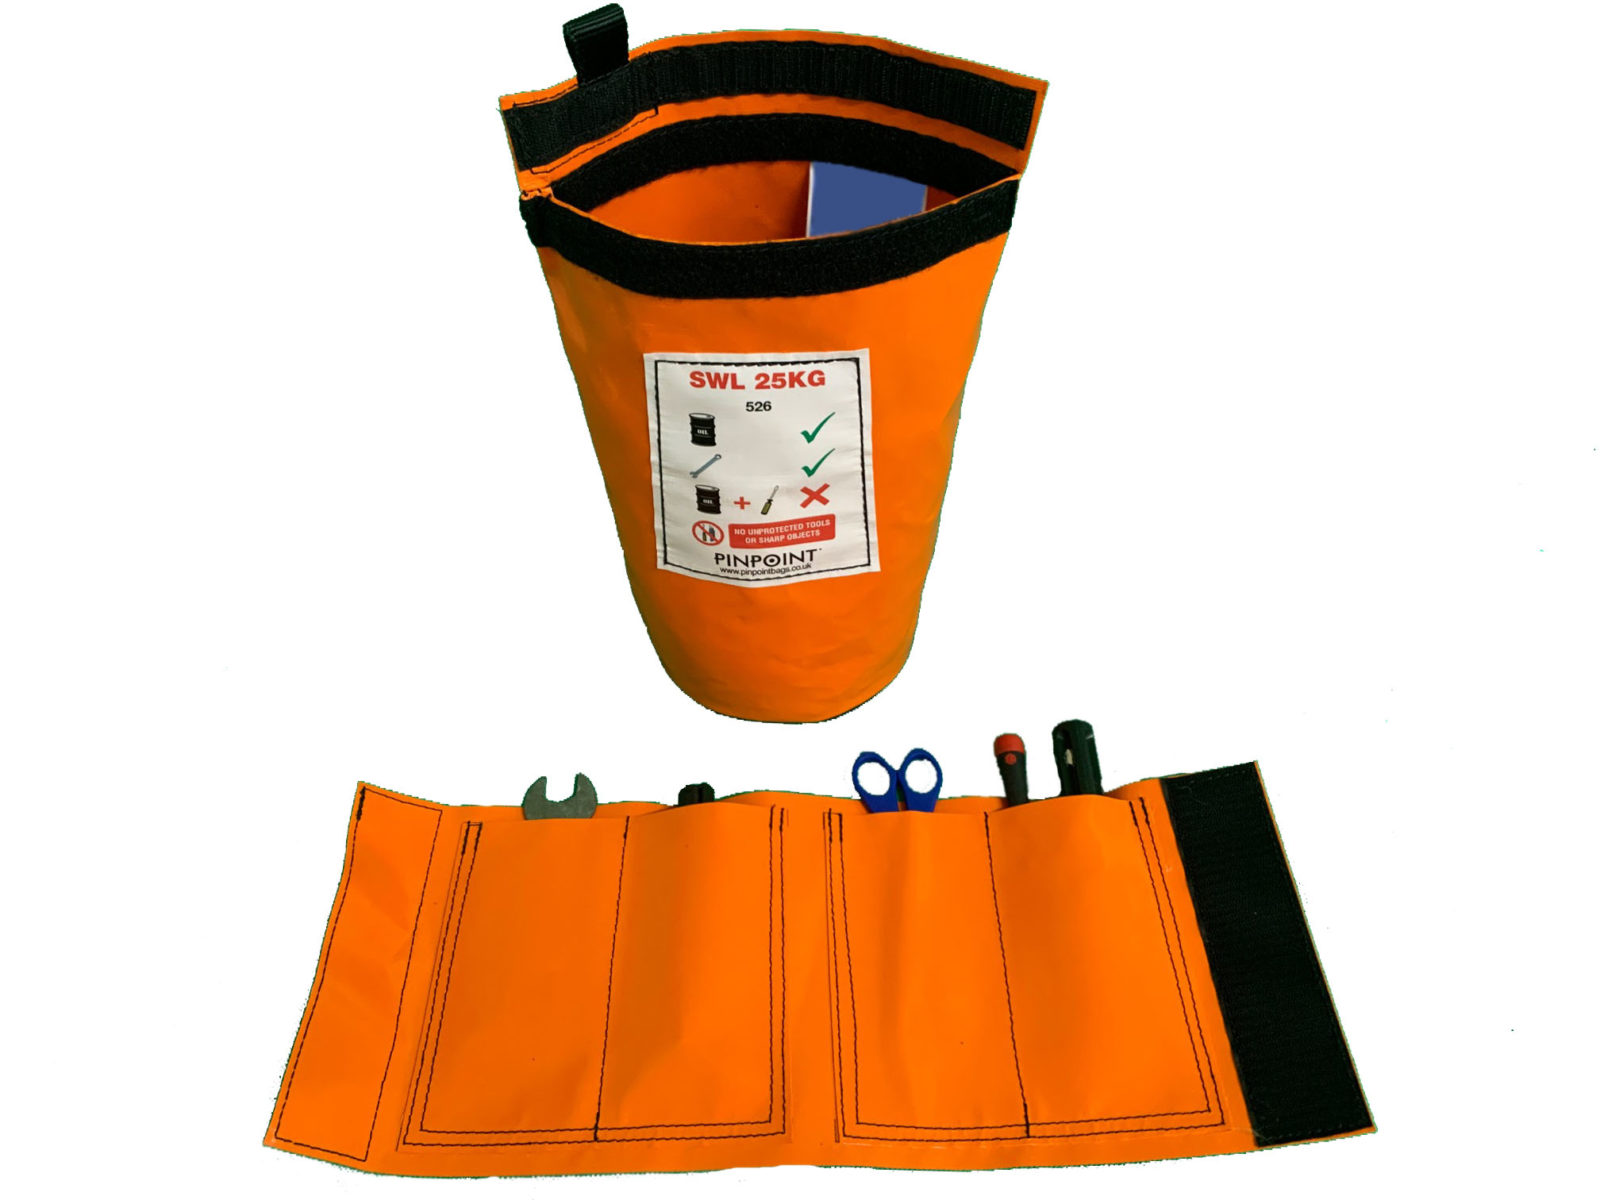 Small Round Based tool bag (STB25) shown in orange.